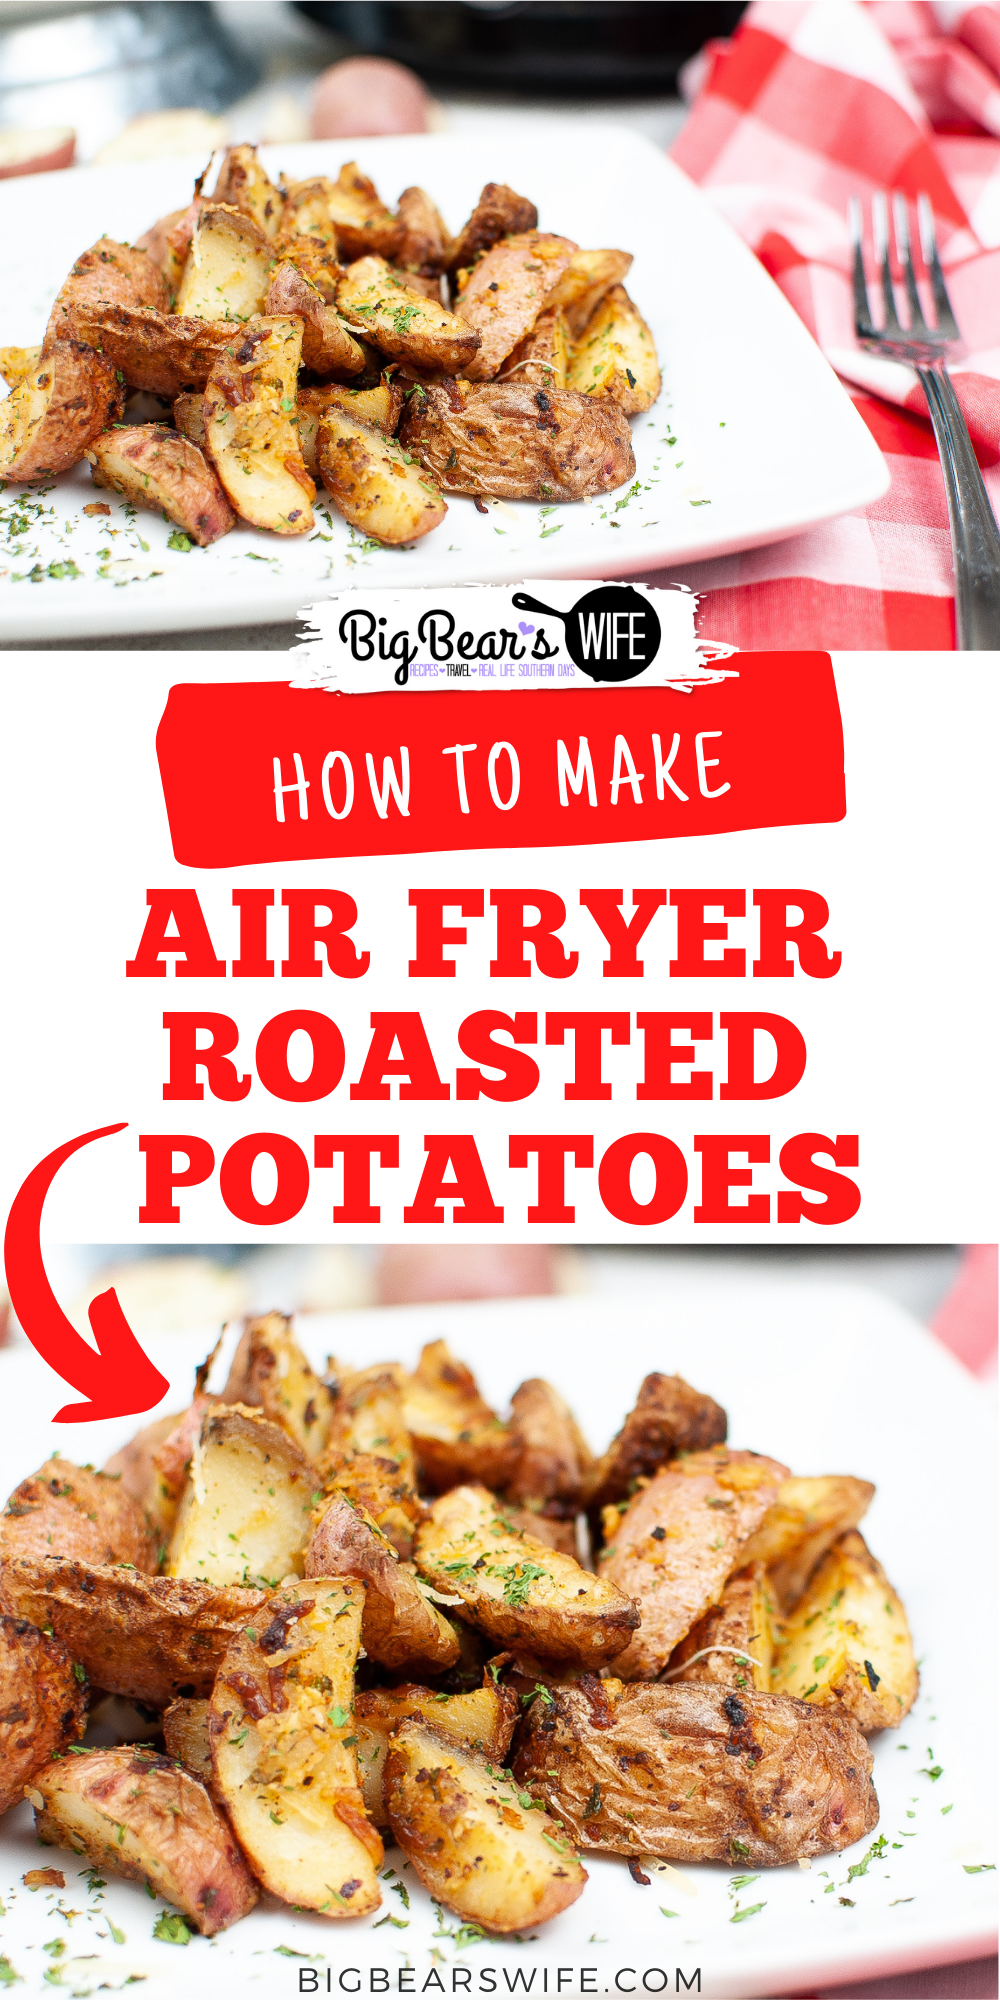 These crispy Air Fryer Roasted Potatoes take about 15 minutes to roast in the air fryer and make the perfect side dish!  via @bigbearswife